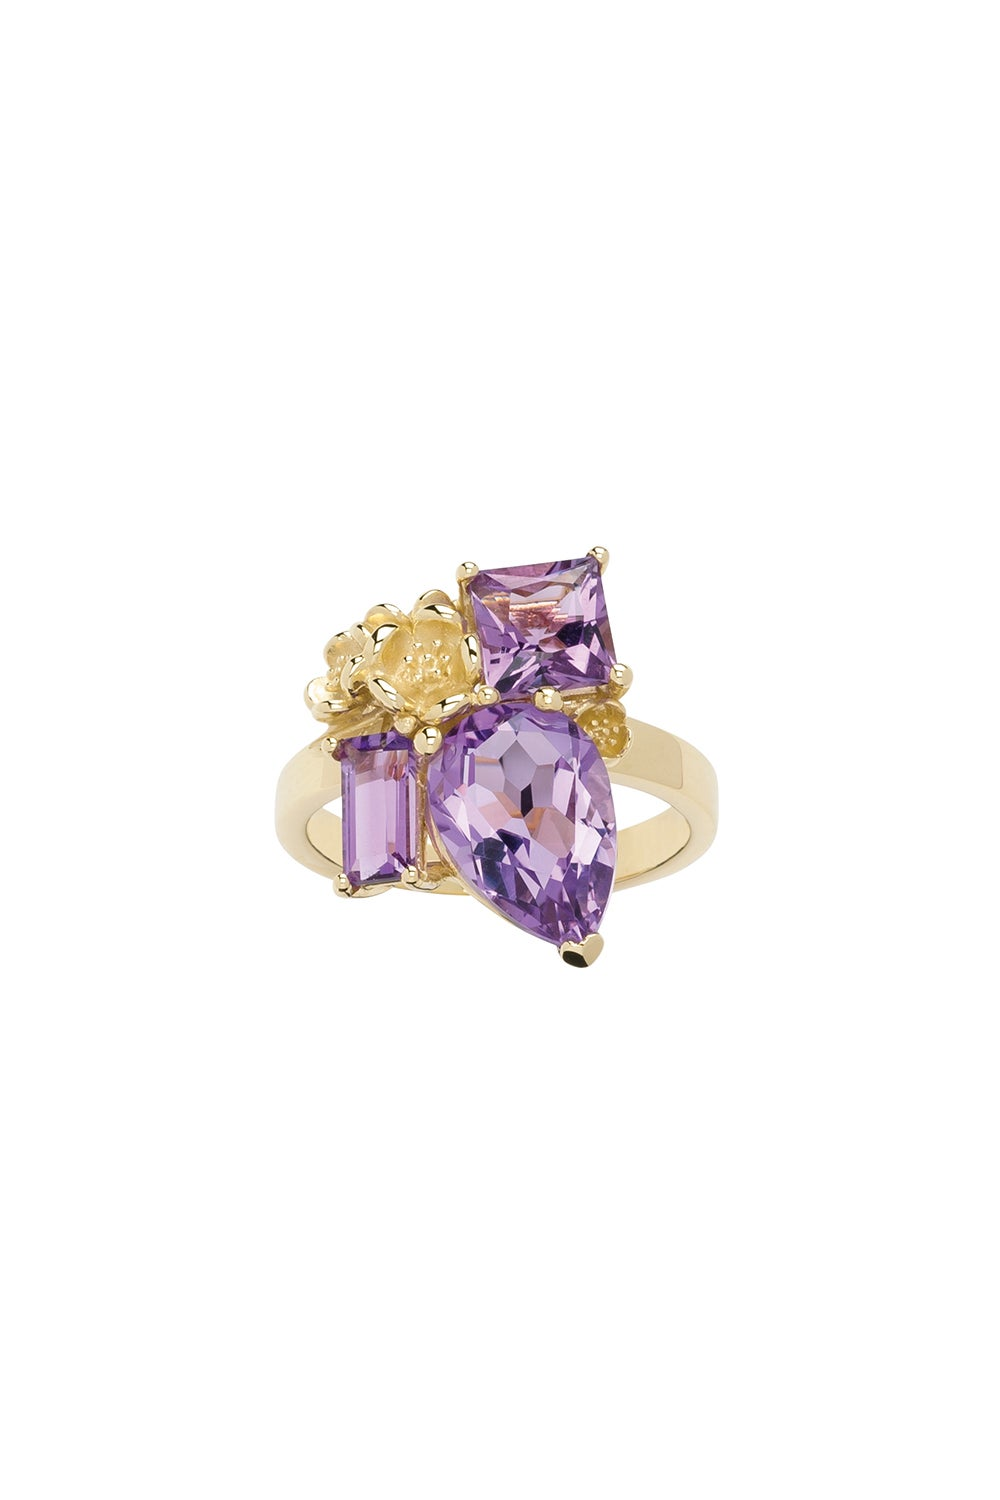 Rock Garden Ring Gold & Amethyst